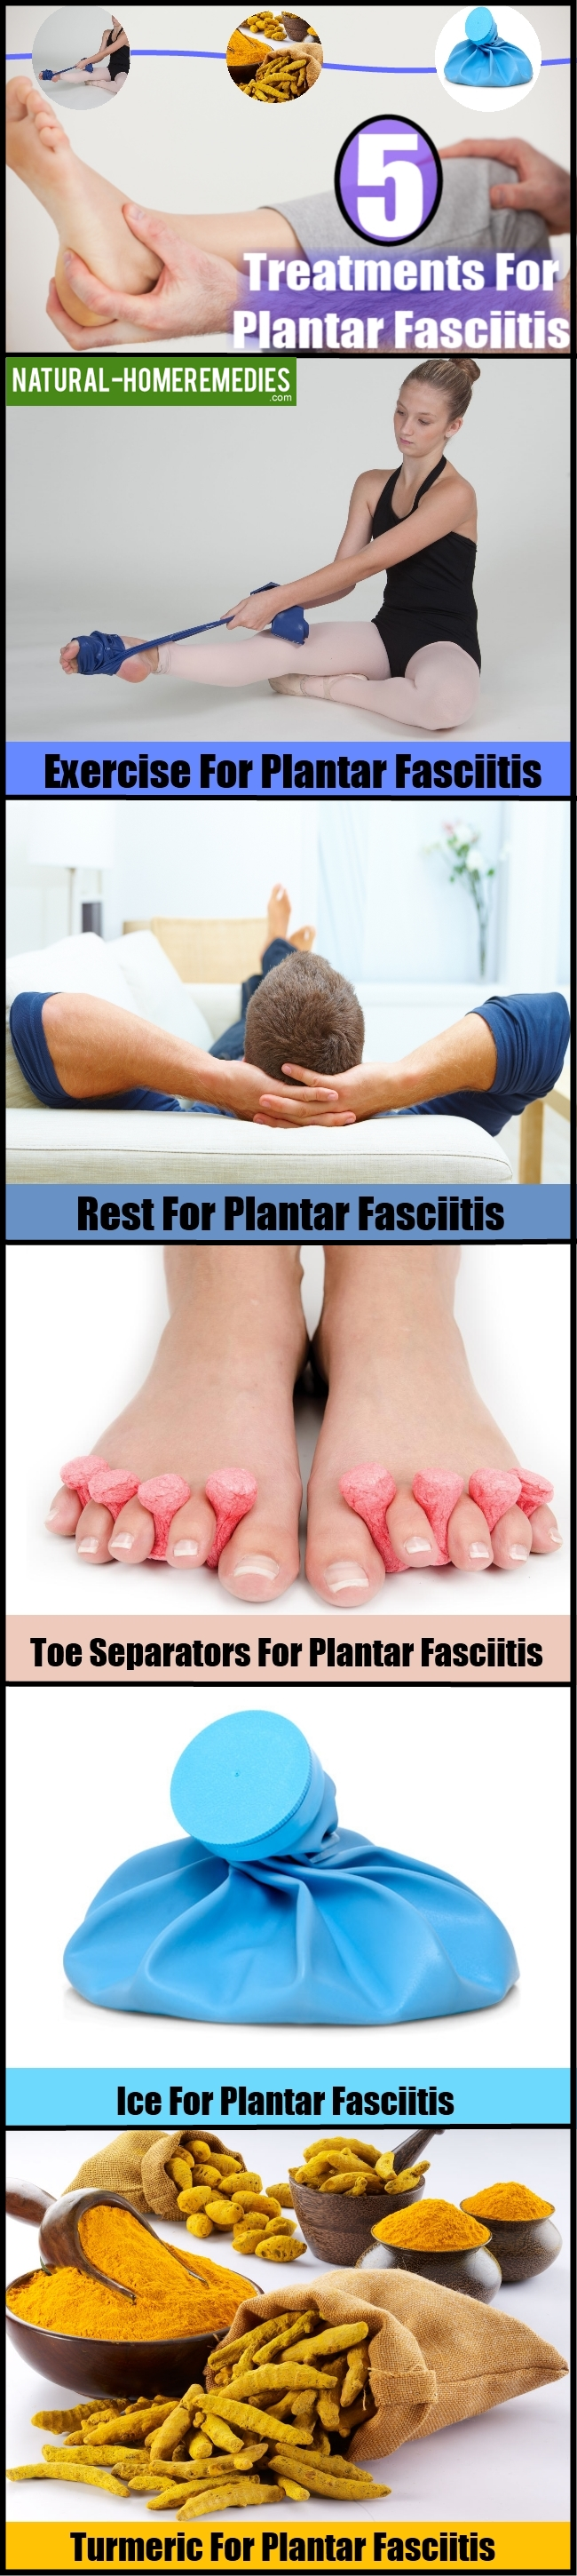 5 Treatments For Plantar Fasciitis